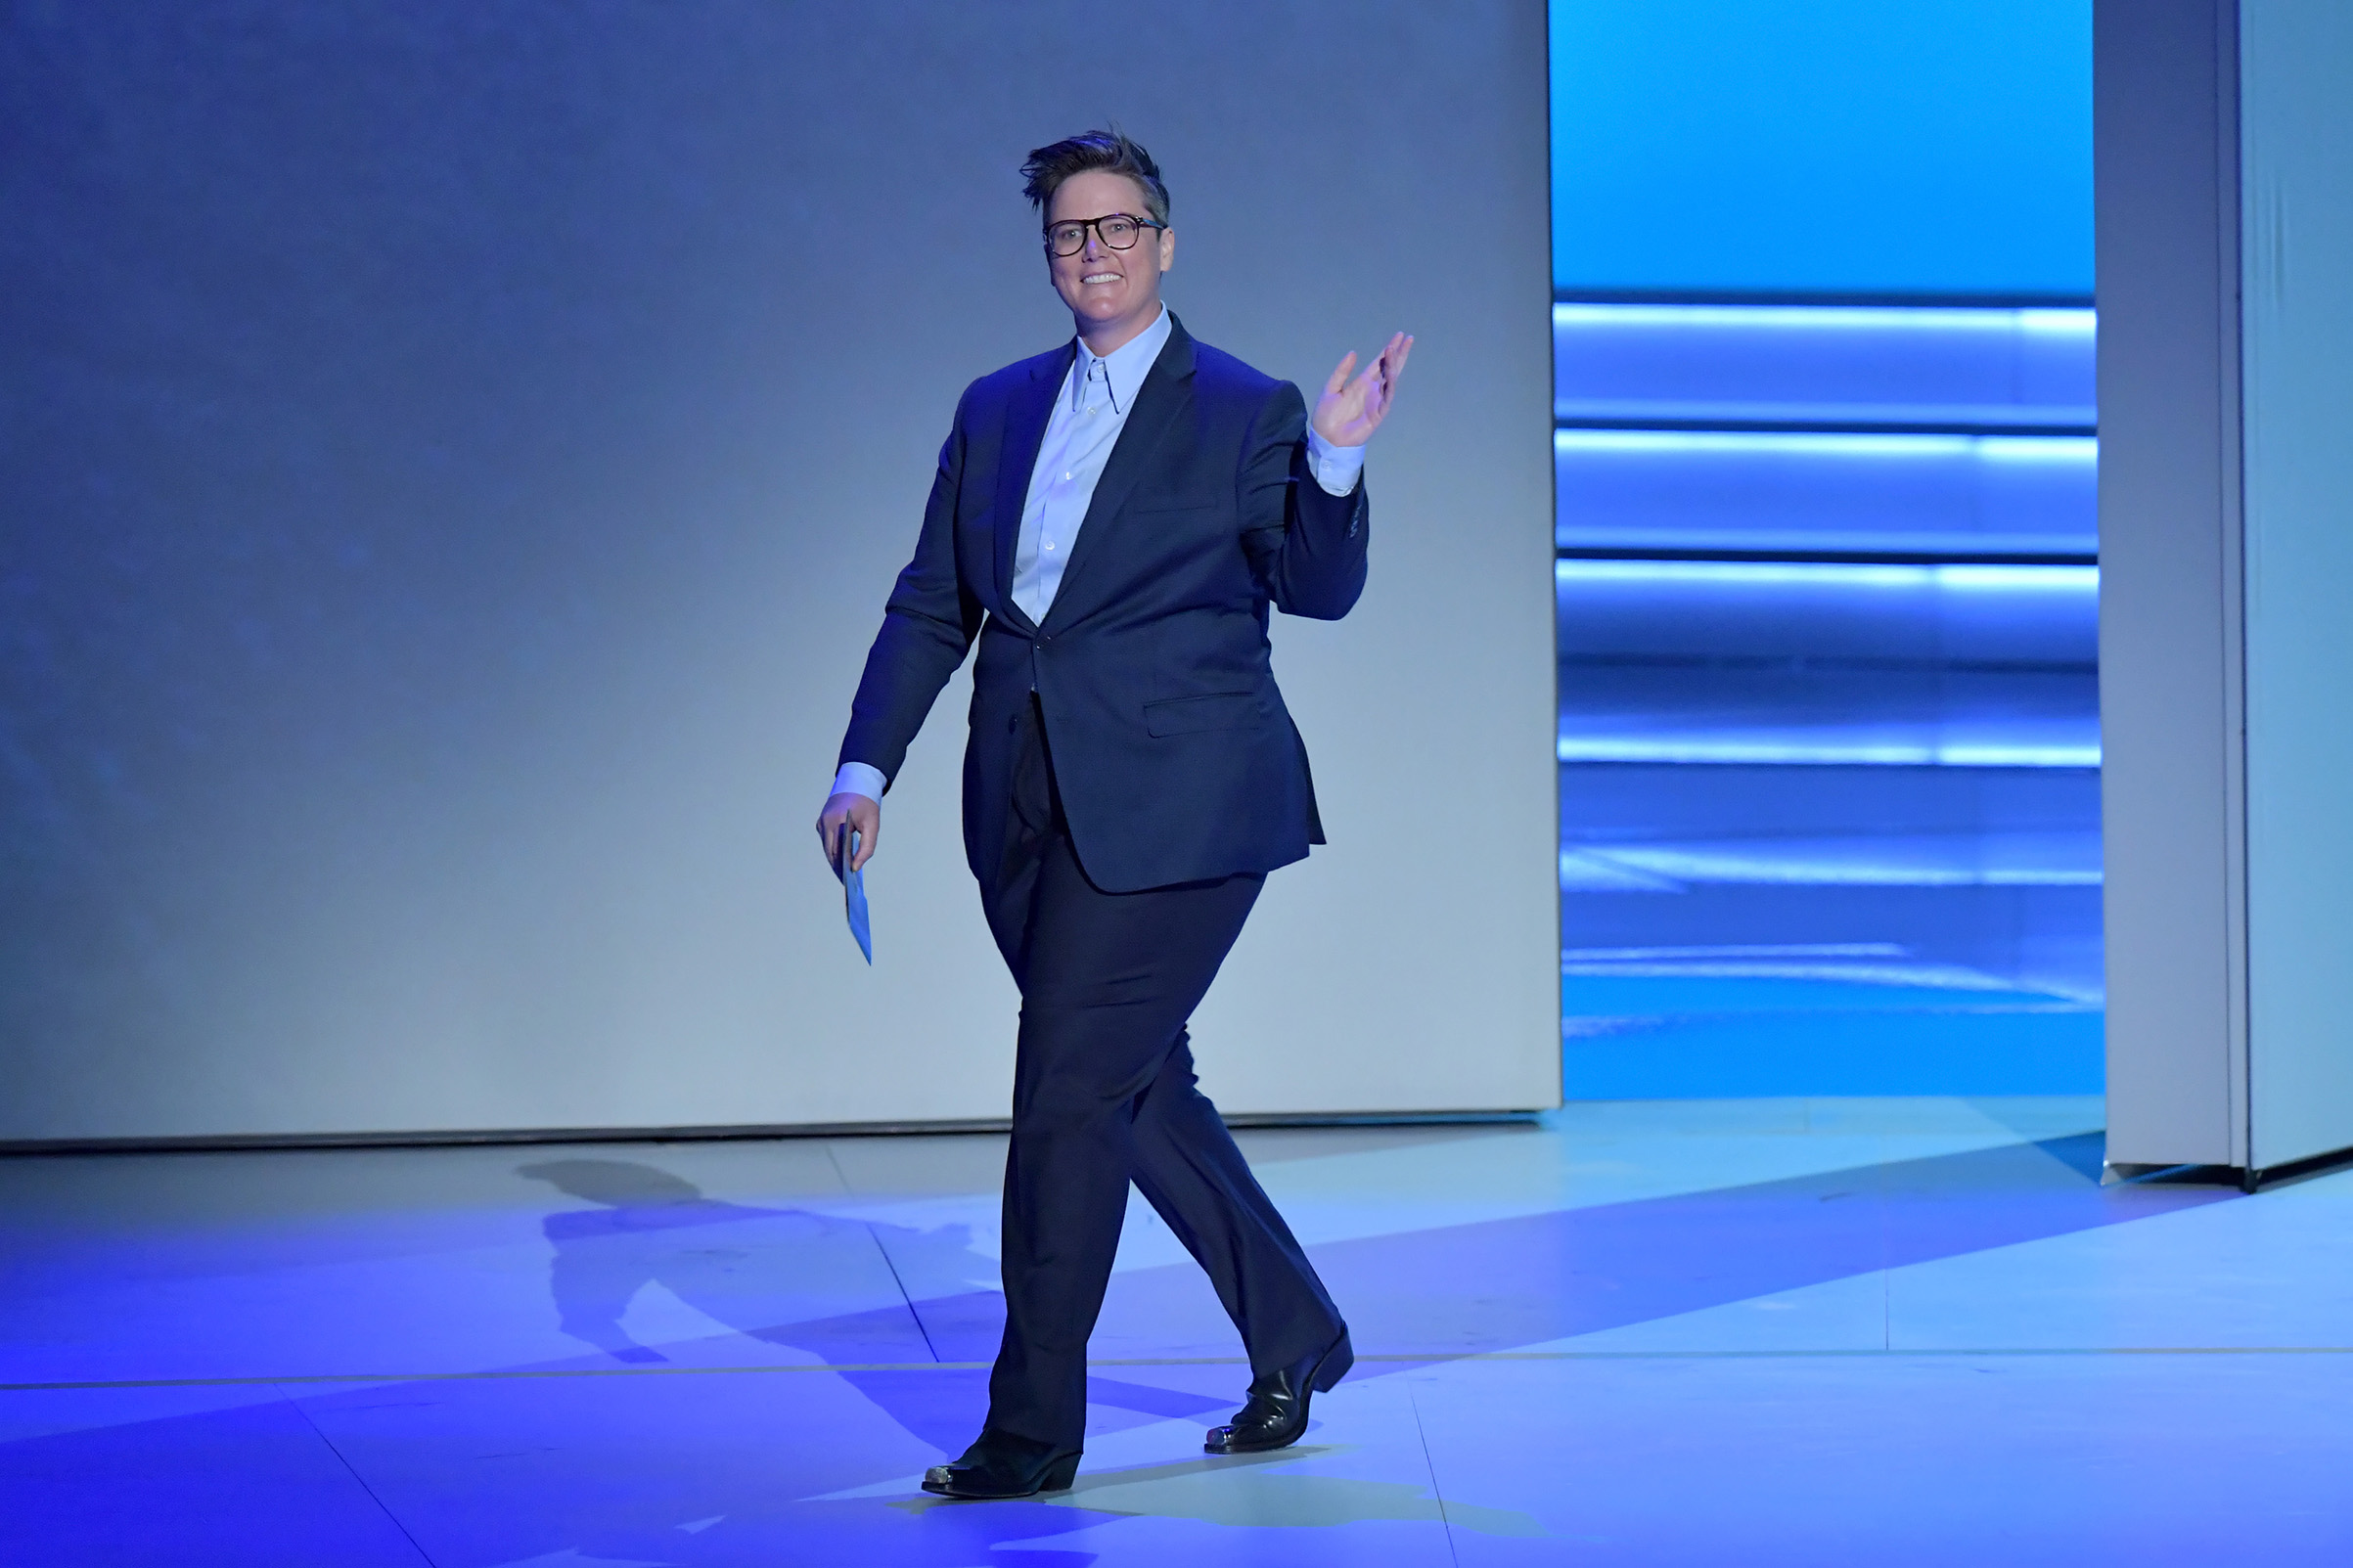 Hannah Gadsby speaks onstage during the 70th Emmy Awards at Microsoft Theater on Sept. 17, 2018 in Los Angeles.